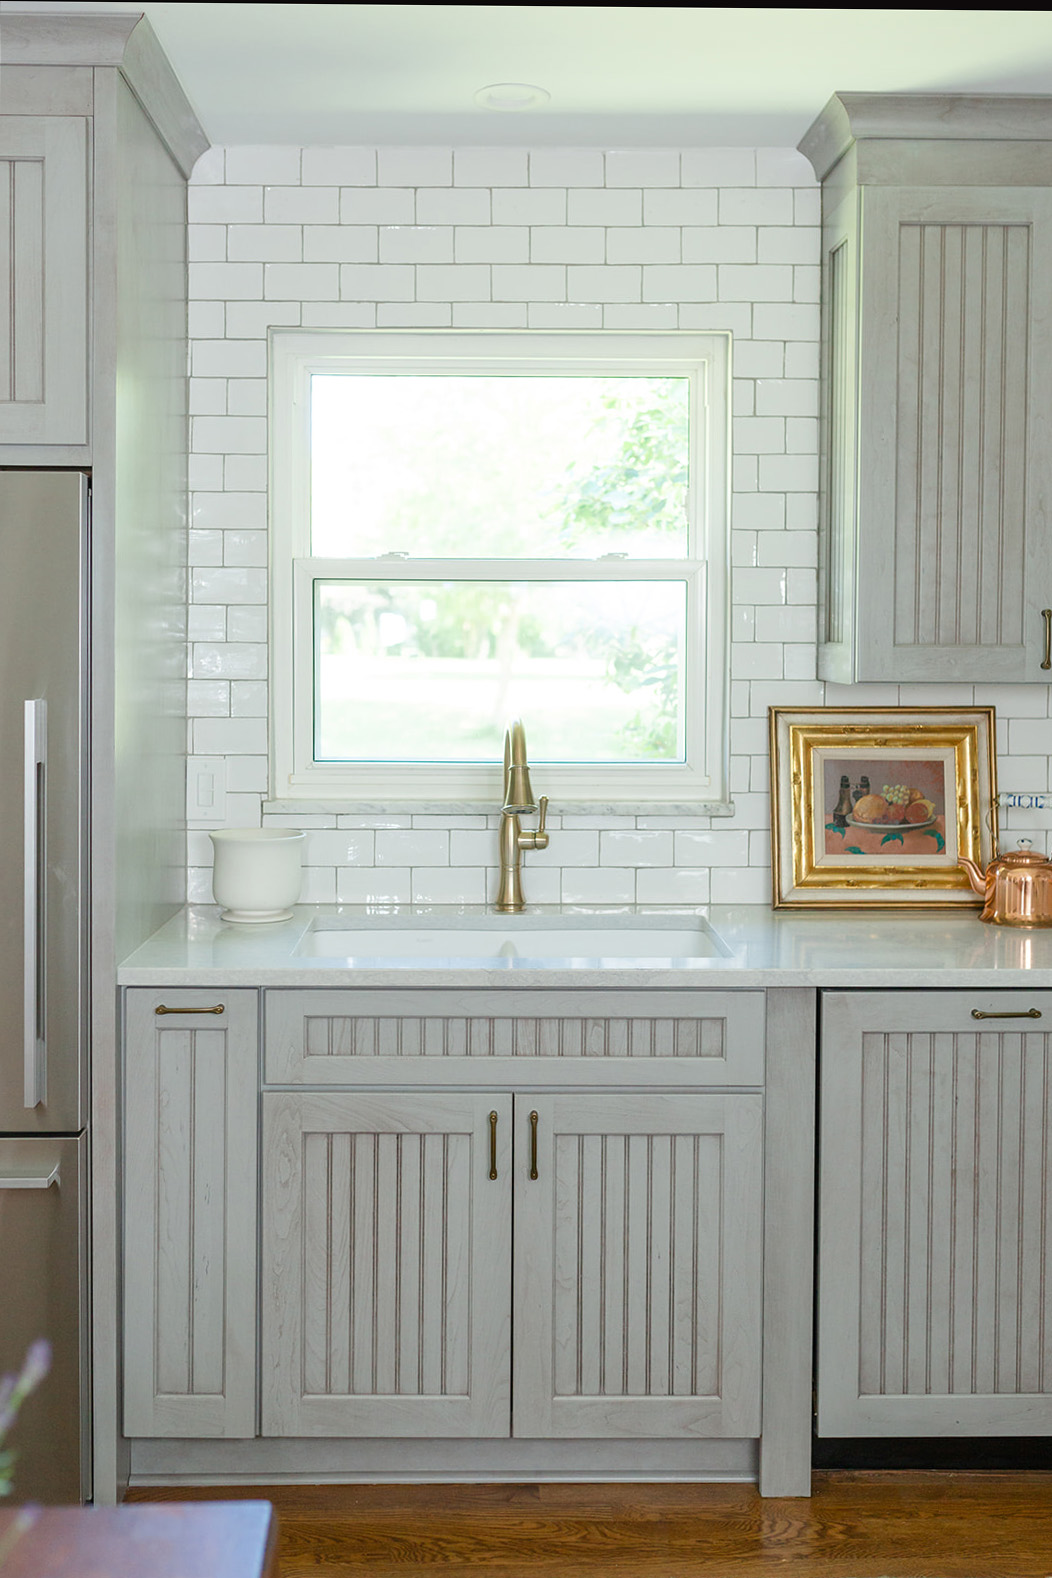 sink with molding and side fridge.jpg